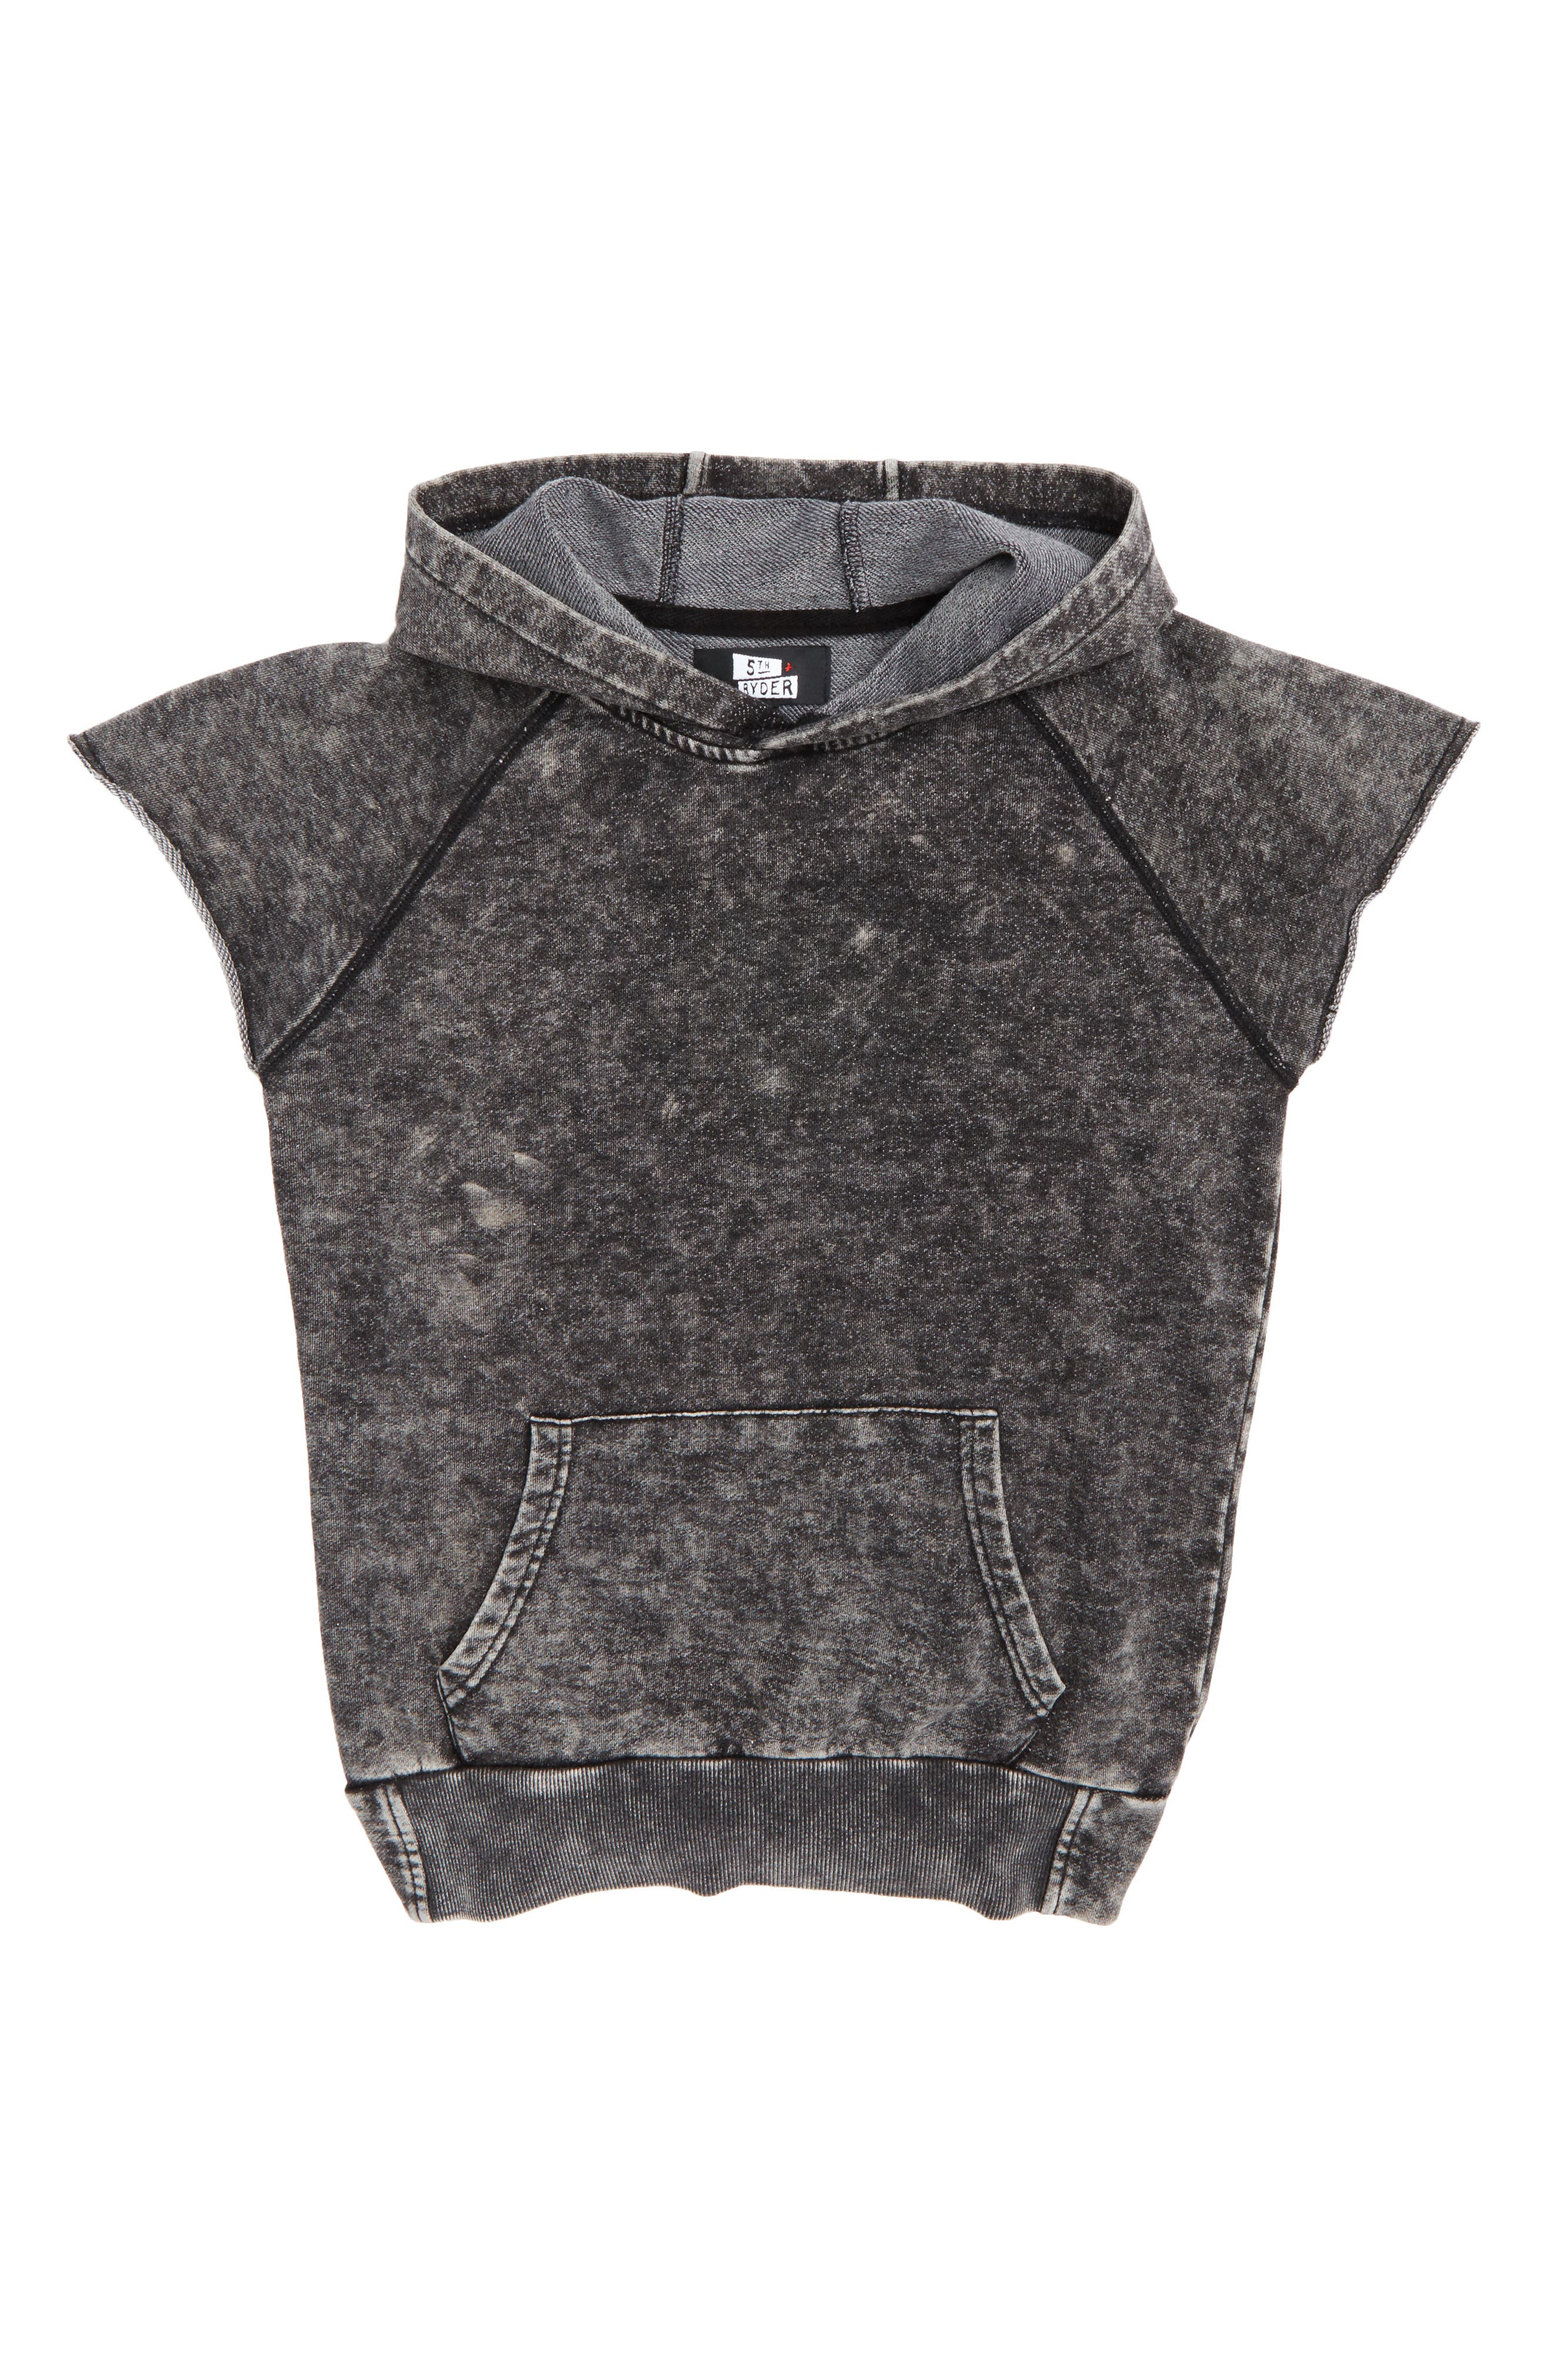 Alternate Image 1 Selected - 5th and Ryder Sleeveless Hoodie (Big Boys)